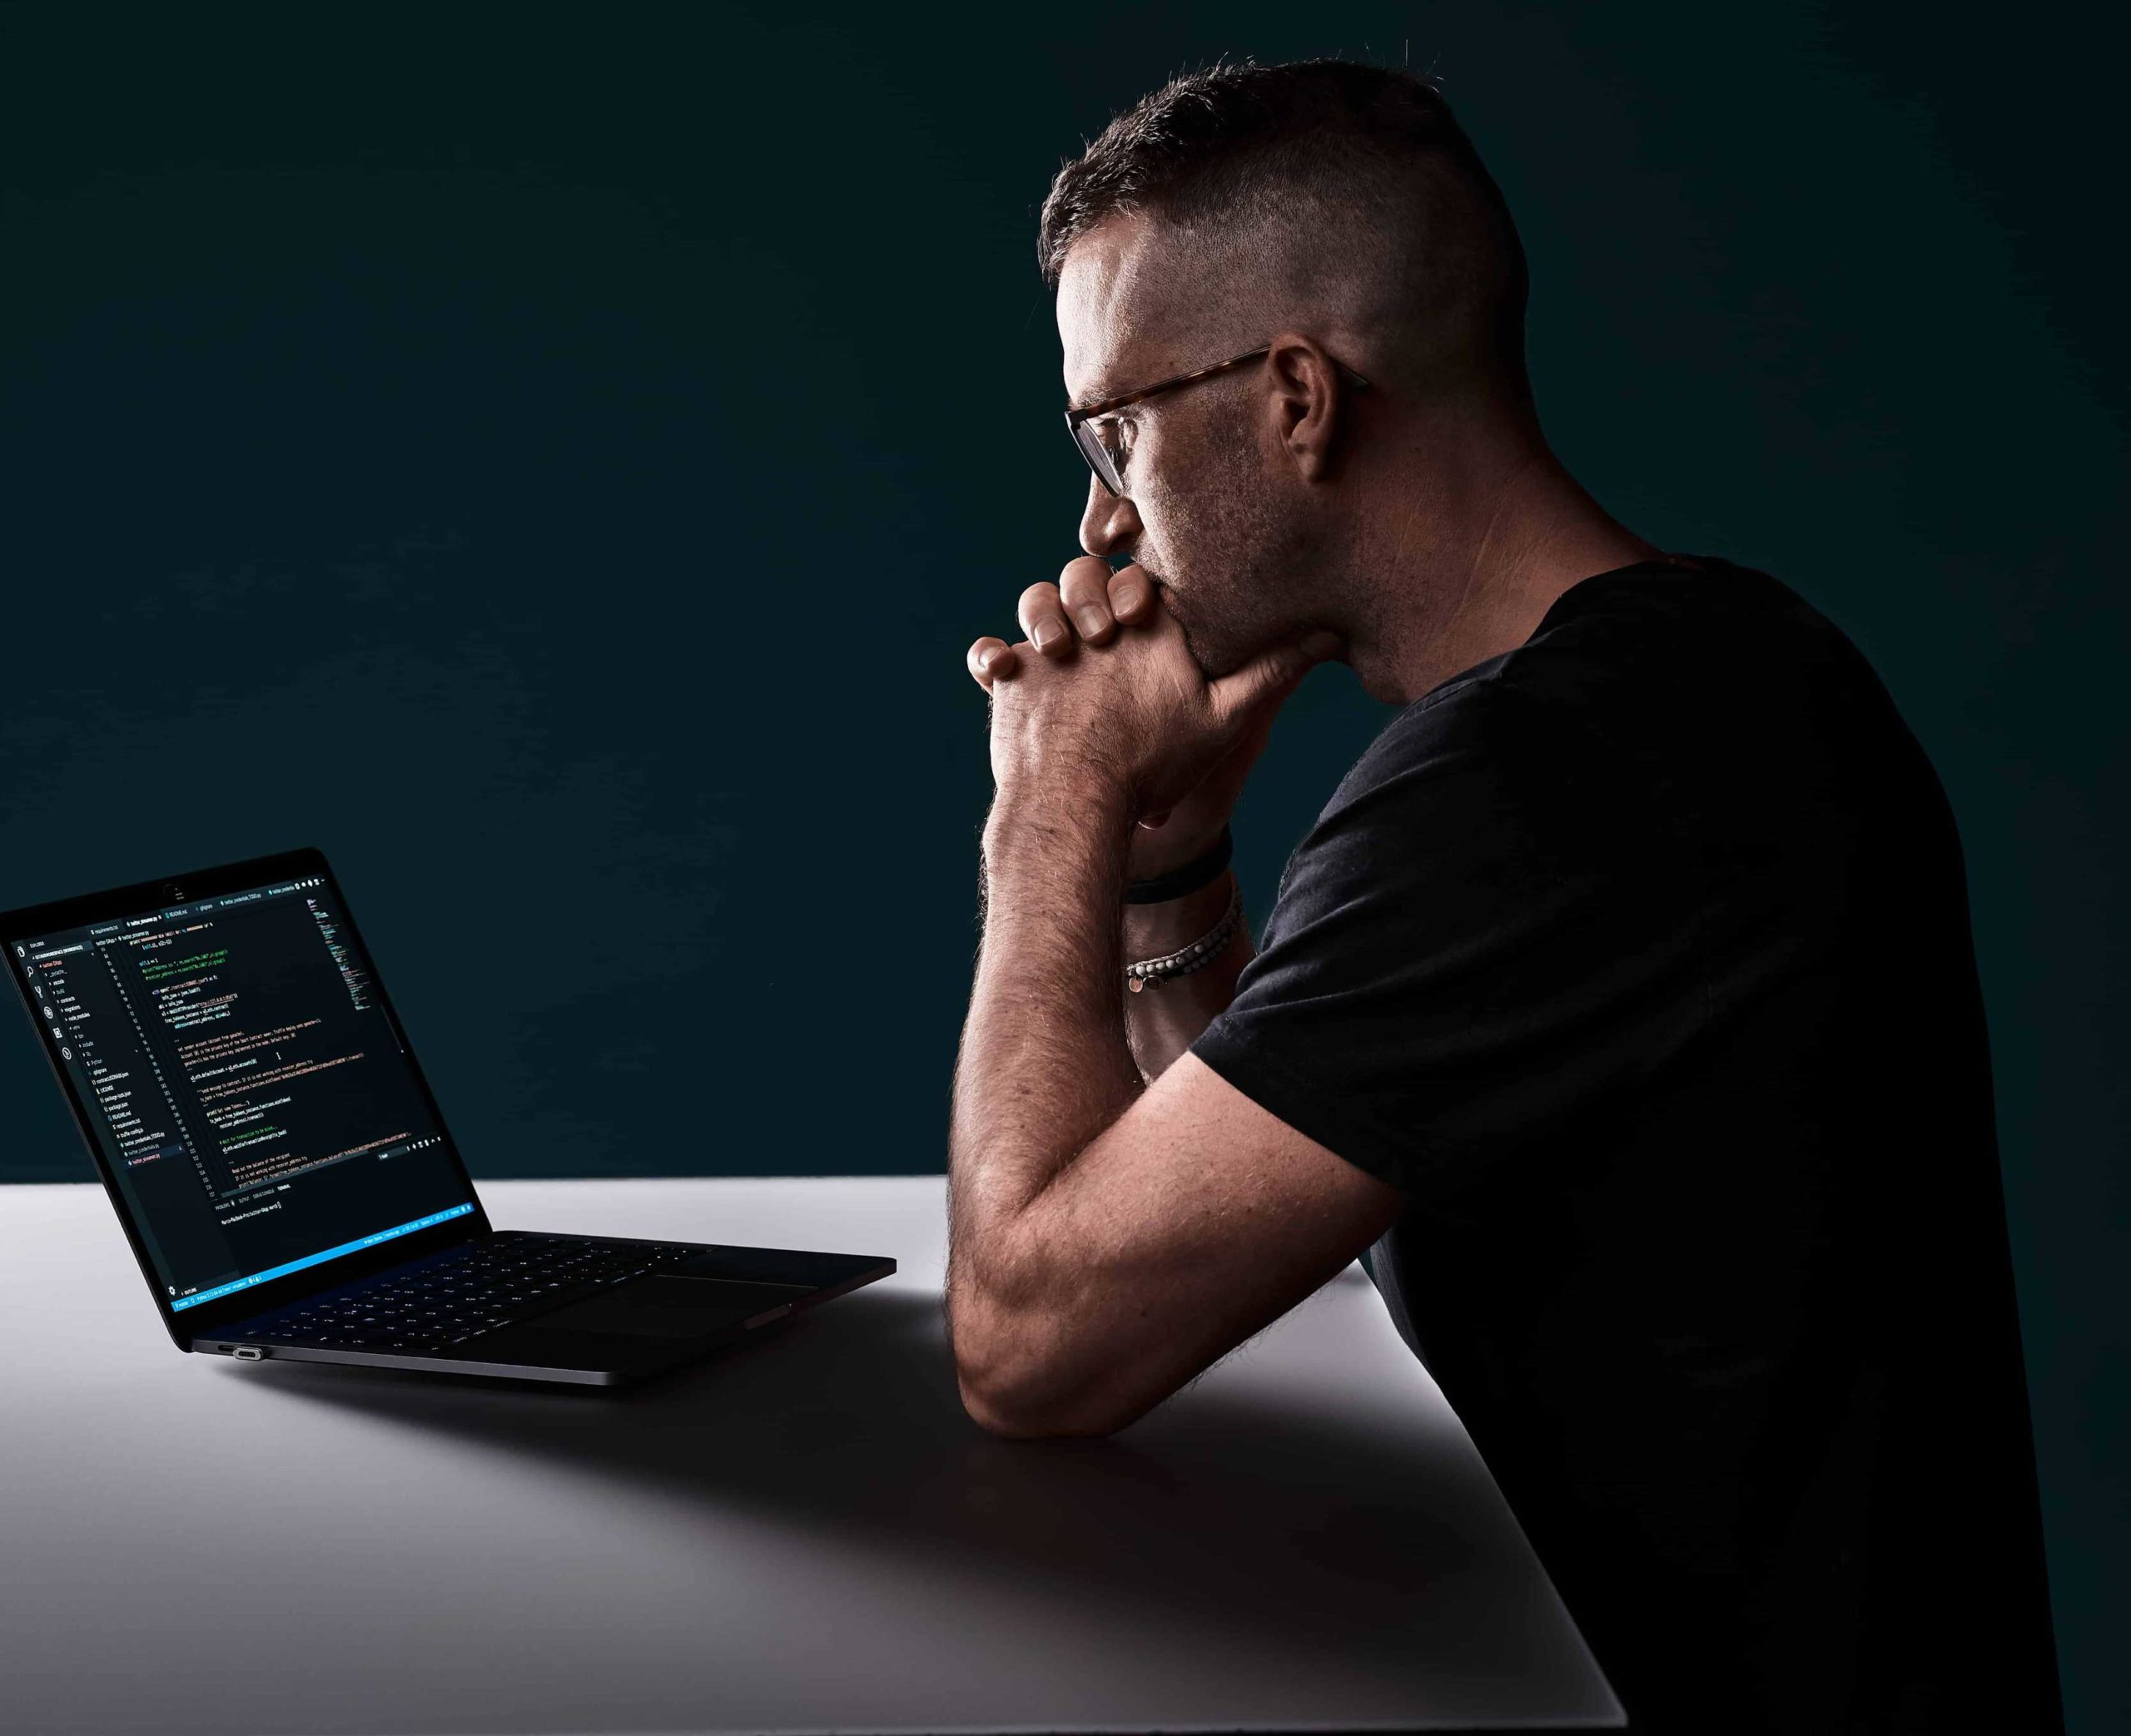 marc-steiner-is-sitting-in-front-of-laptop-and-coding